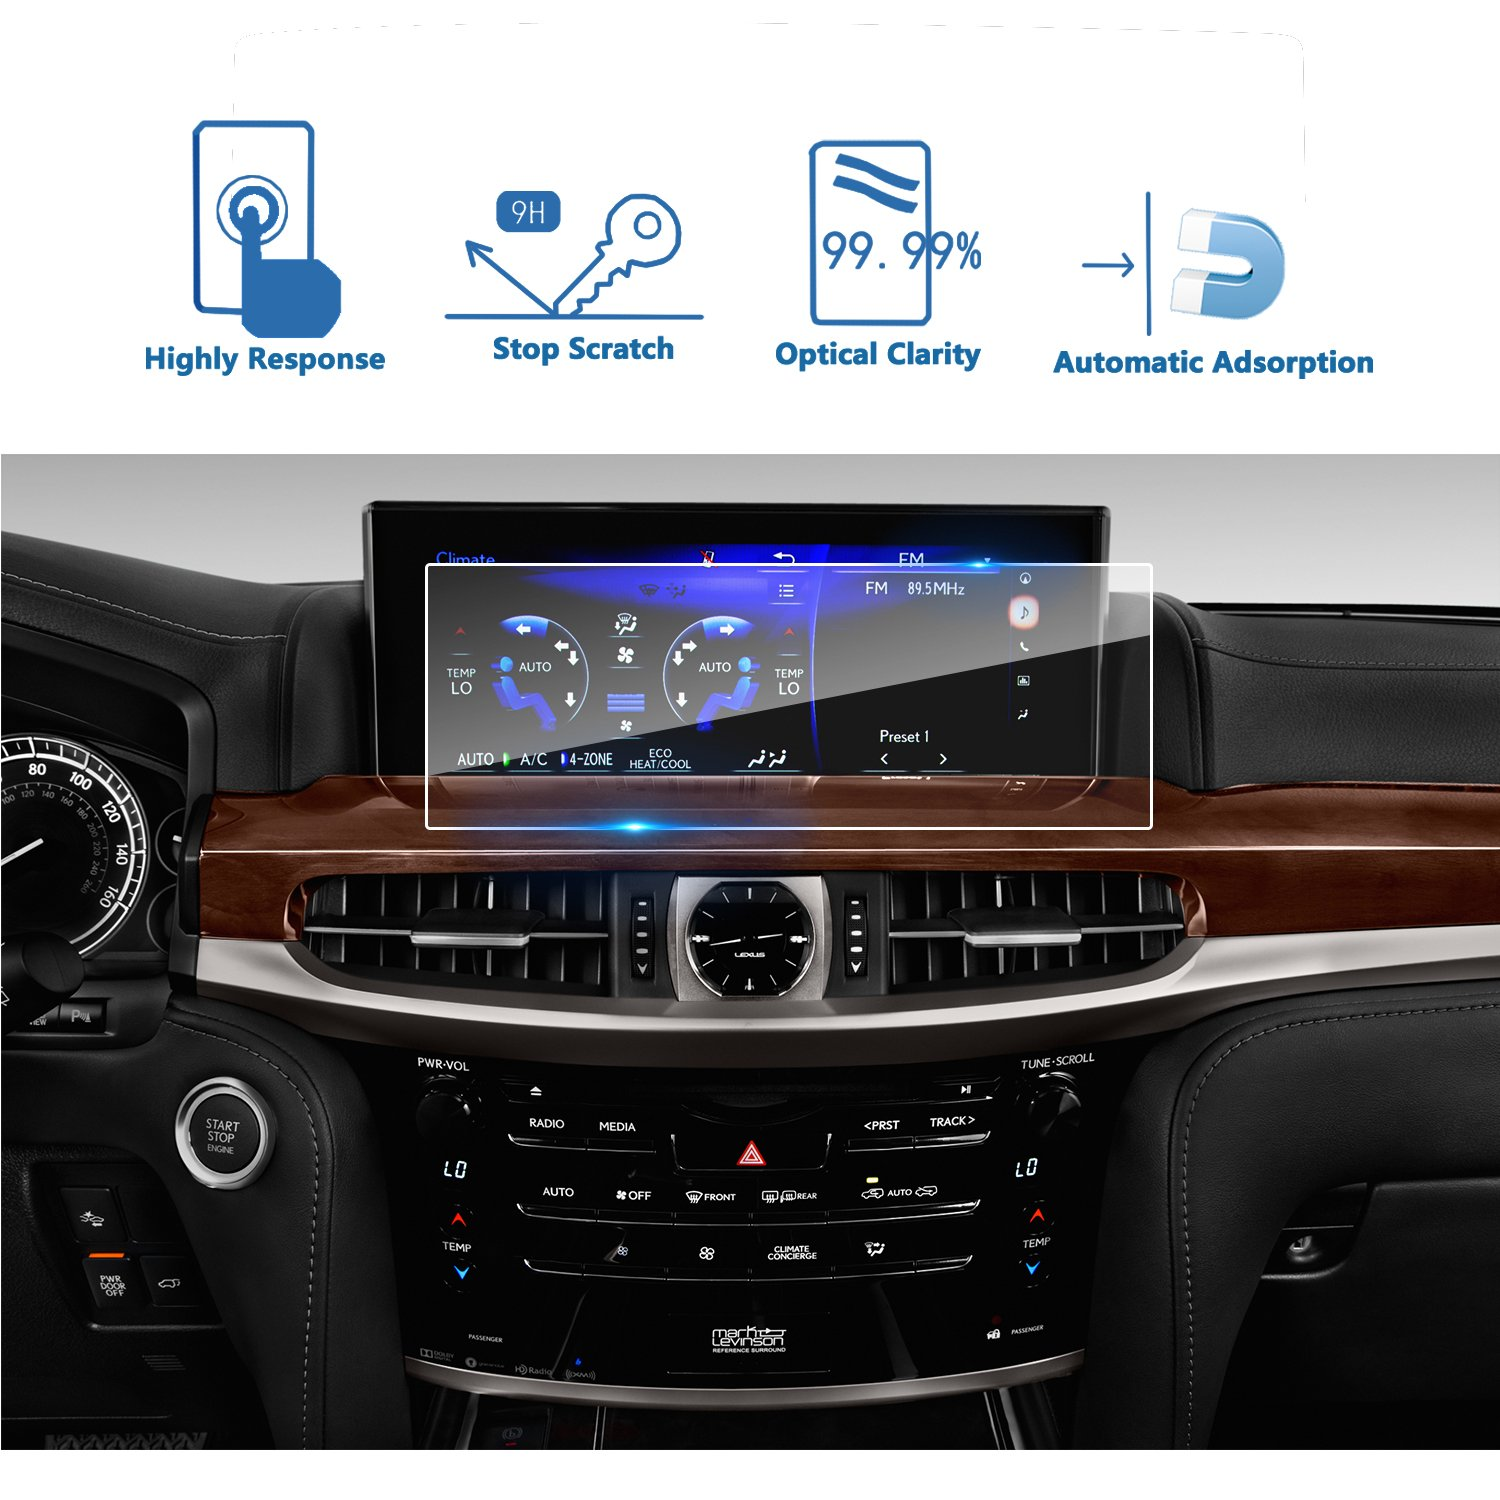 LFOTPP 2016-2018 Lexus LX570 URJ201W 12.3 Inch Car Navigation Screen Protector, [9H] Tempered Glass Infotainment Center Touch Screen Protector Anti Scratch High Clarity